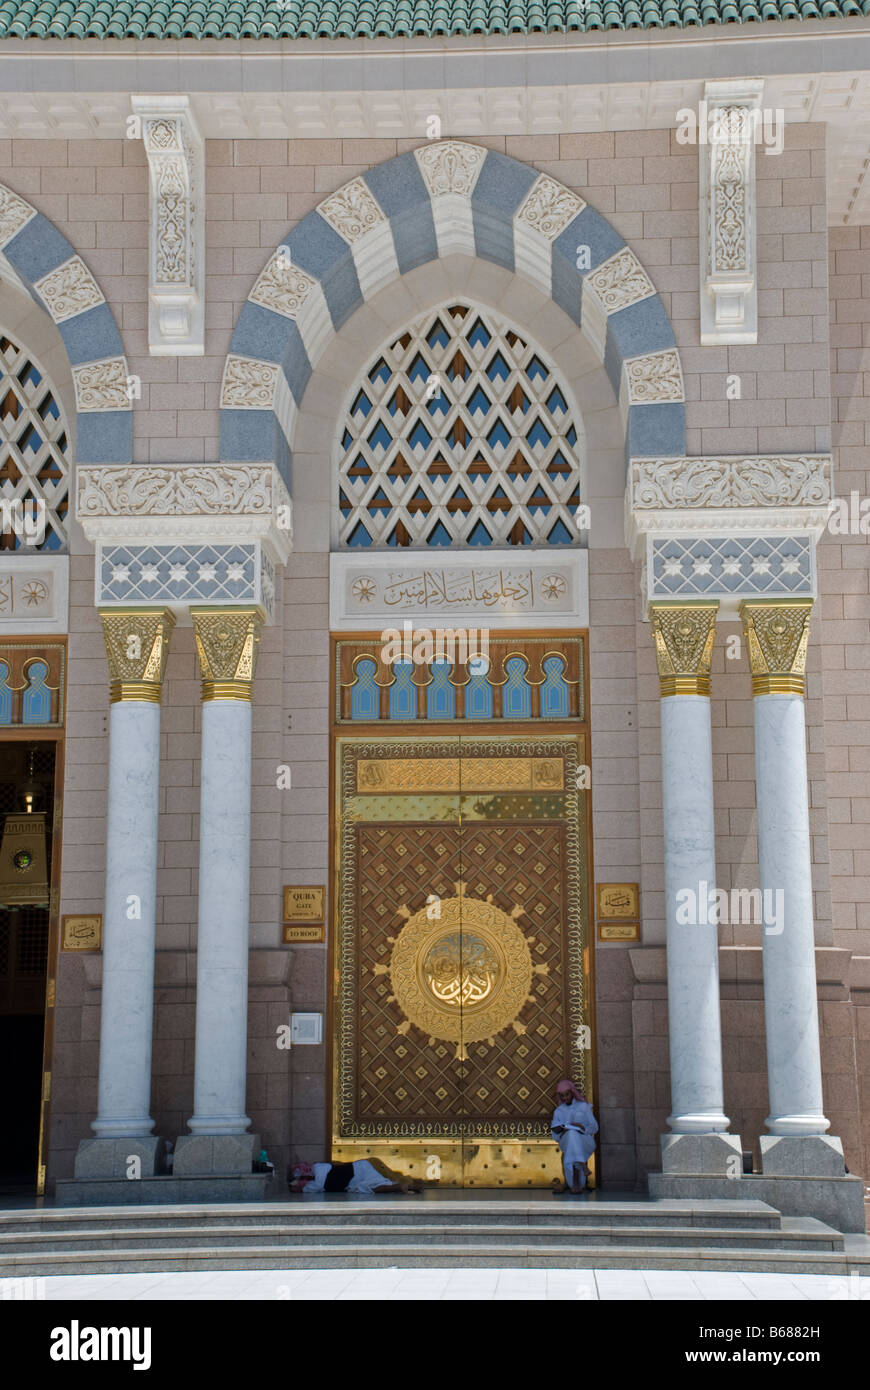 Door at the Quba gate The Mosque of the Prophet Masjid al Nabawi Madinah Saudi Arabia & Door at the Quba gate The Mosque of the Prophet Masjid al Nabawi ...